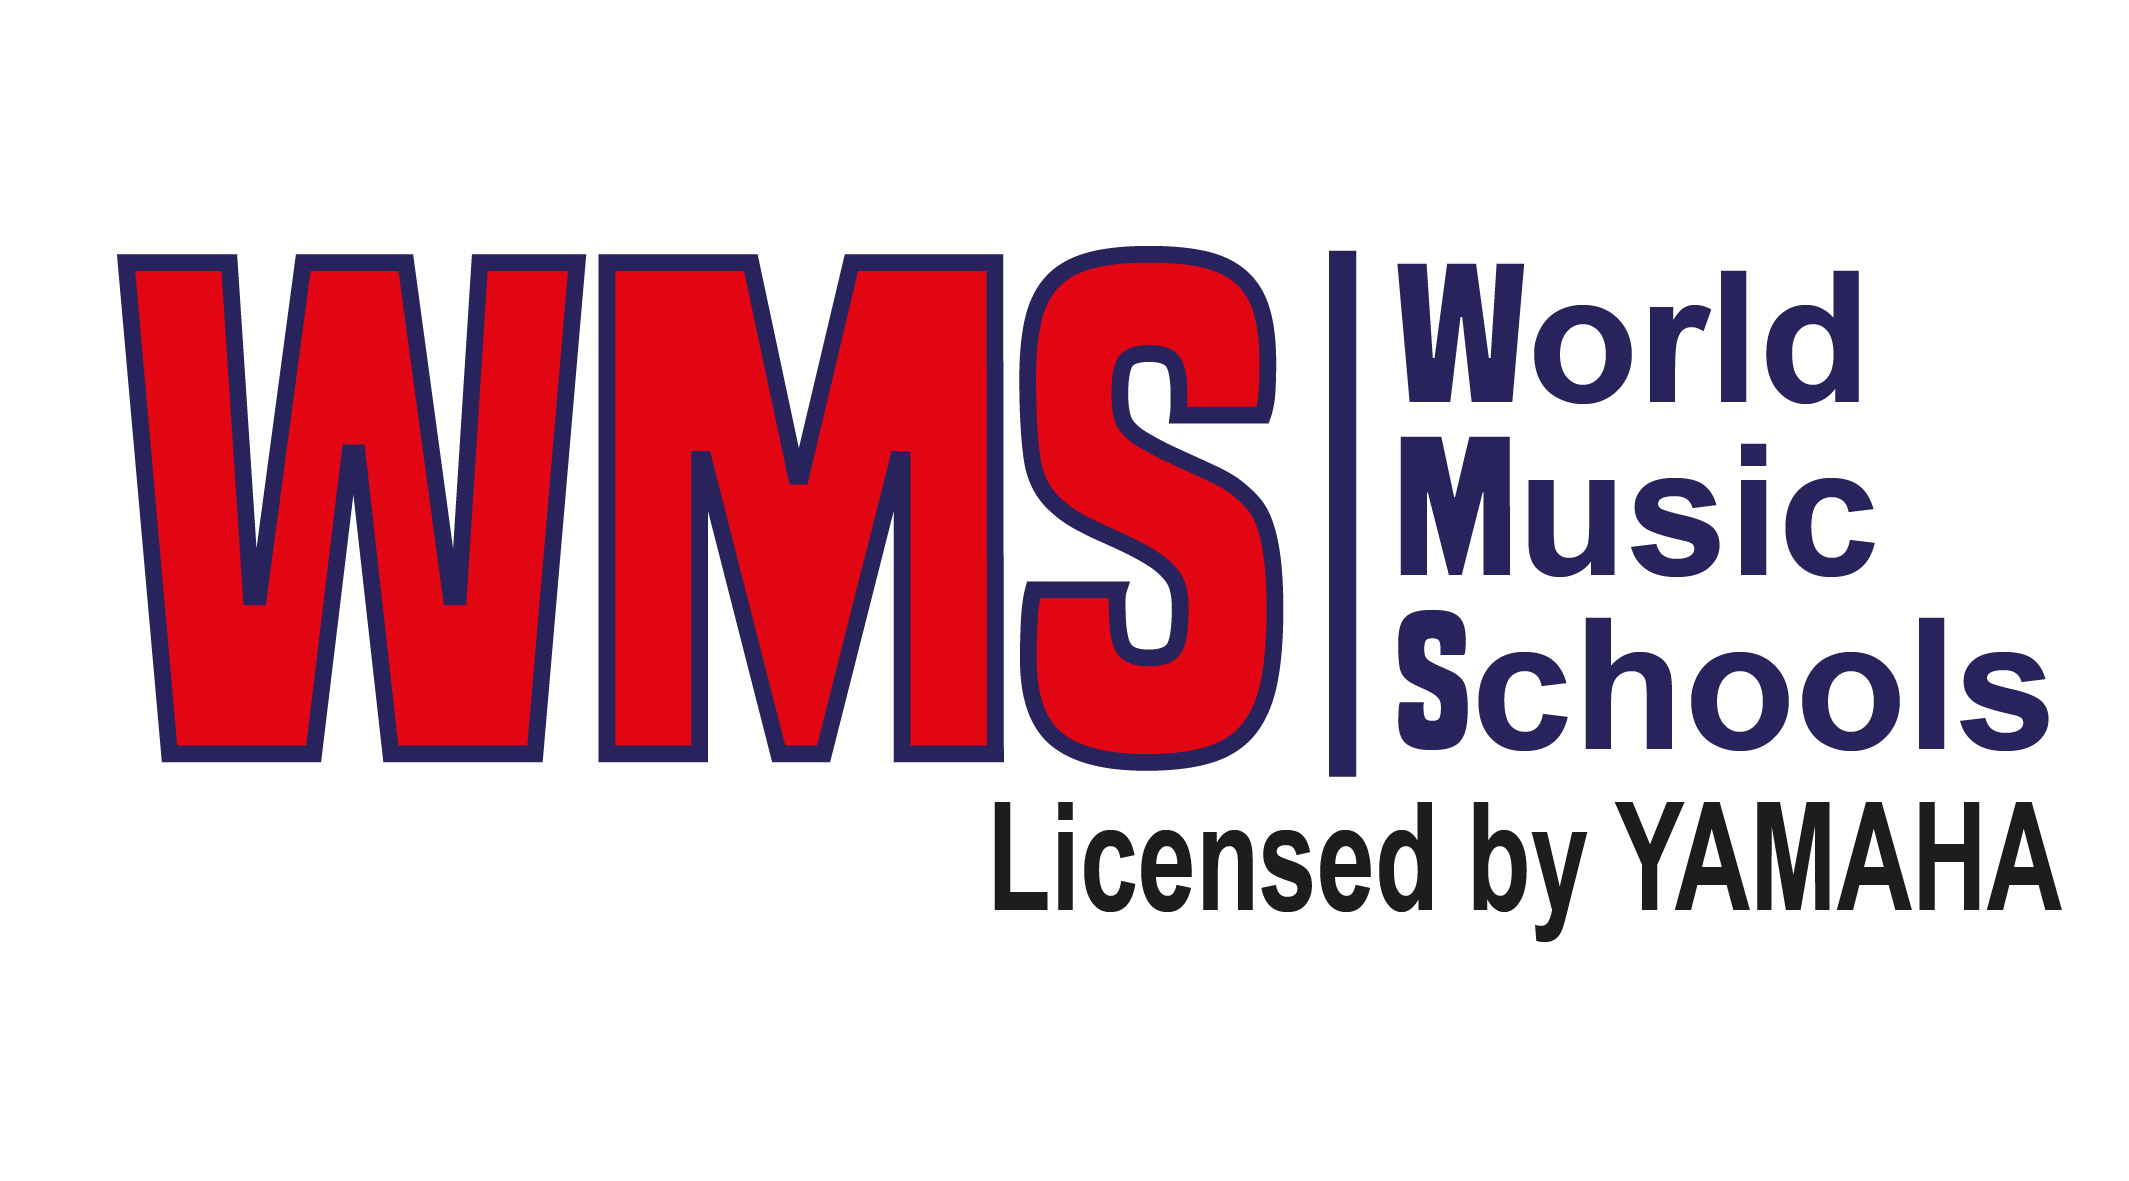 World music schools coupons near me in doral 8coupons for Yamaha music school los angeles